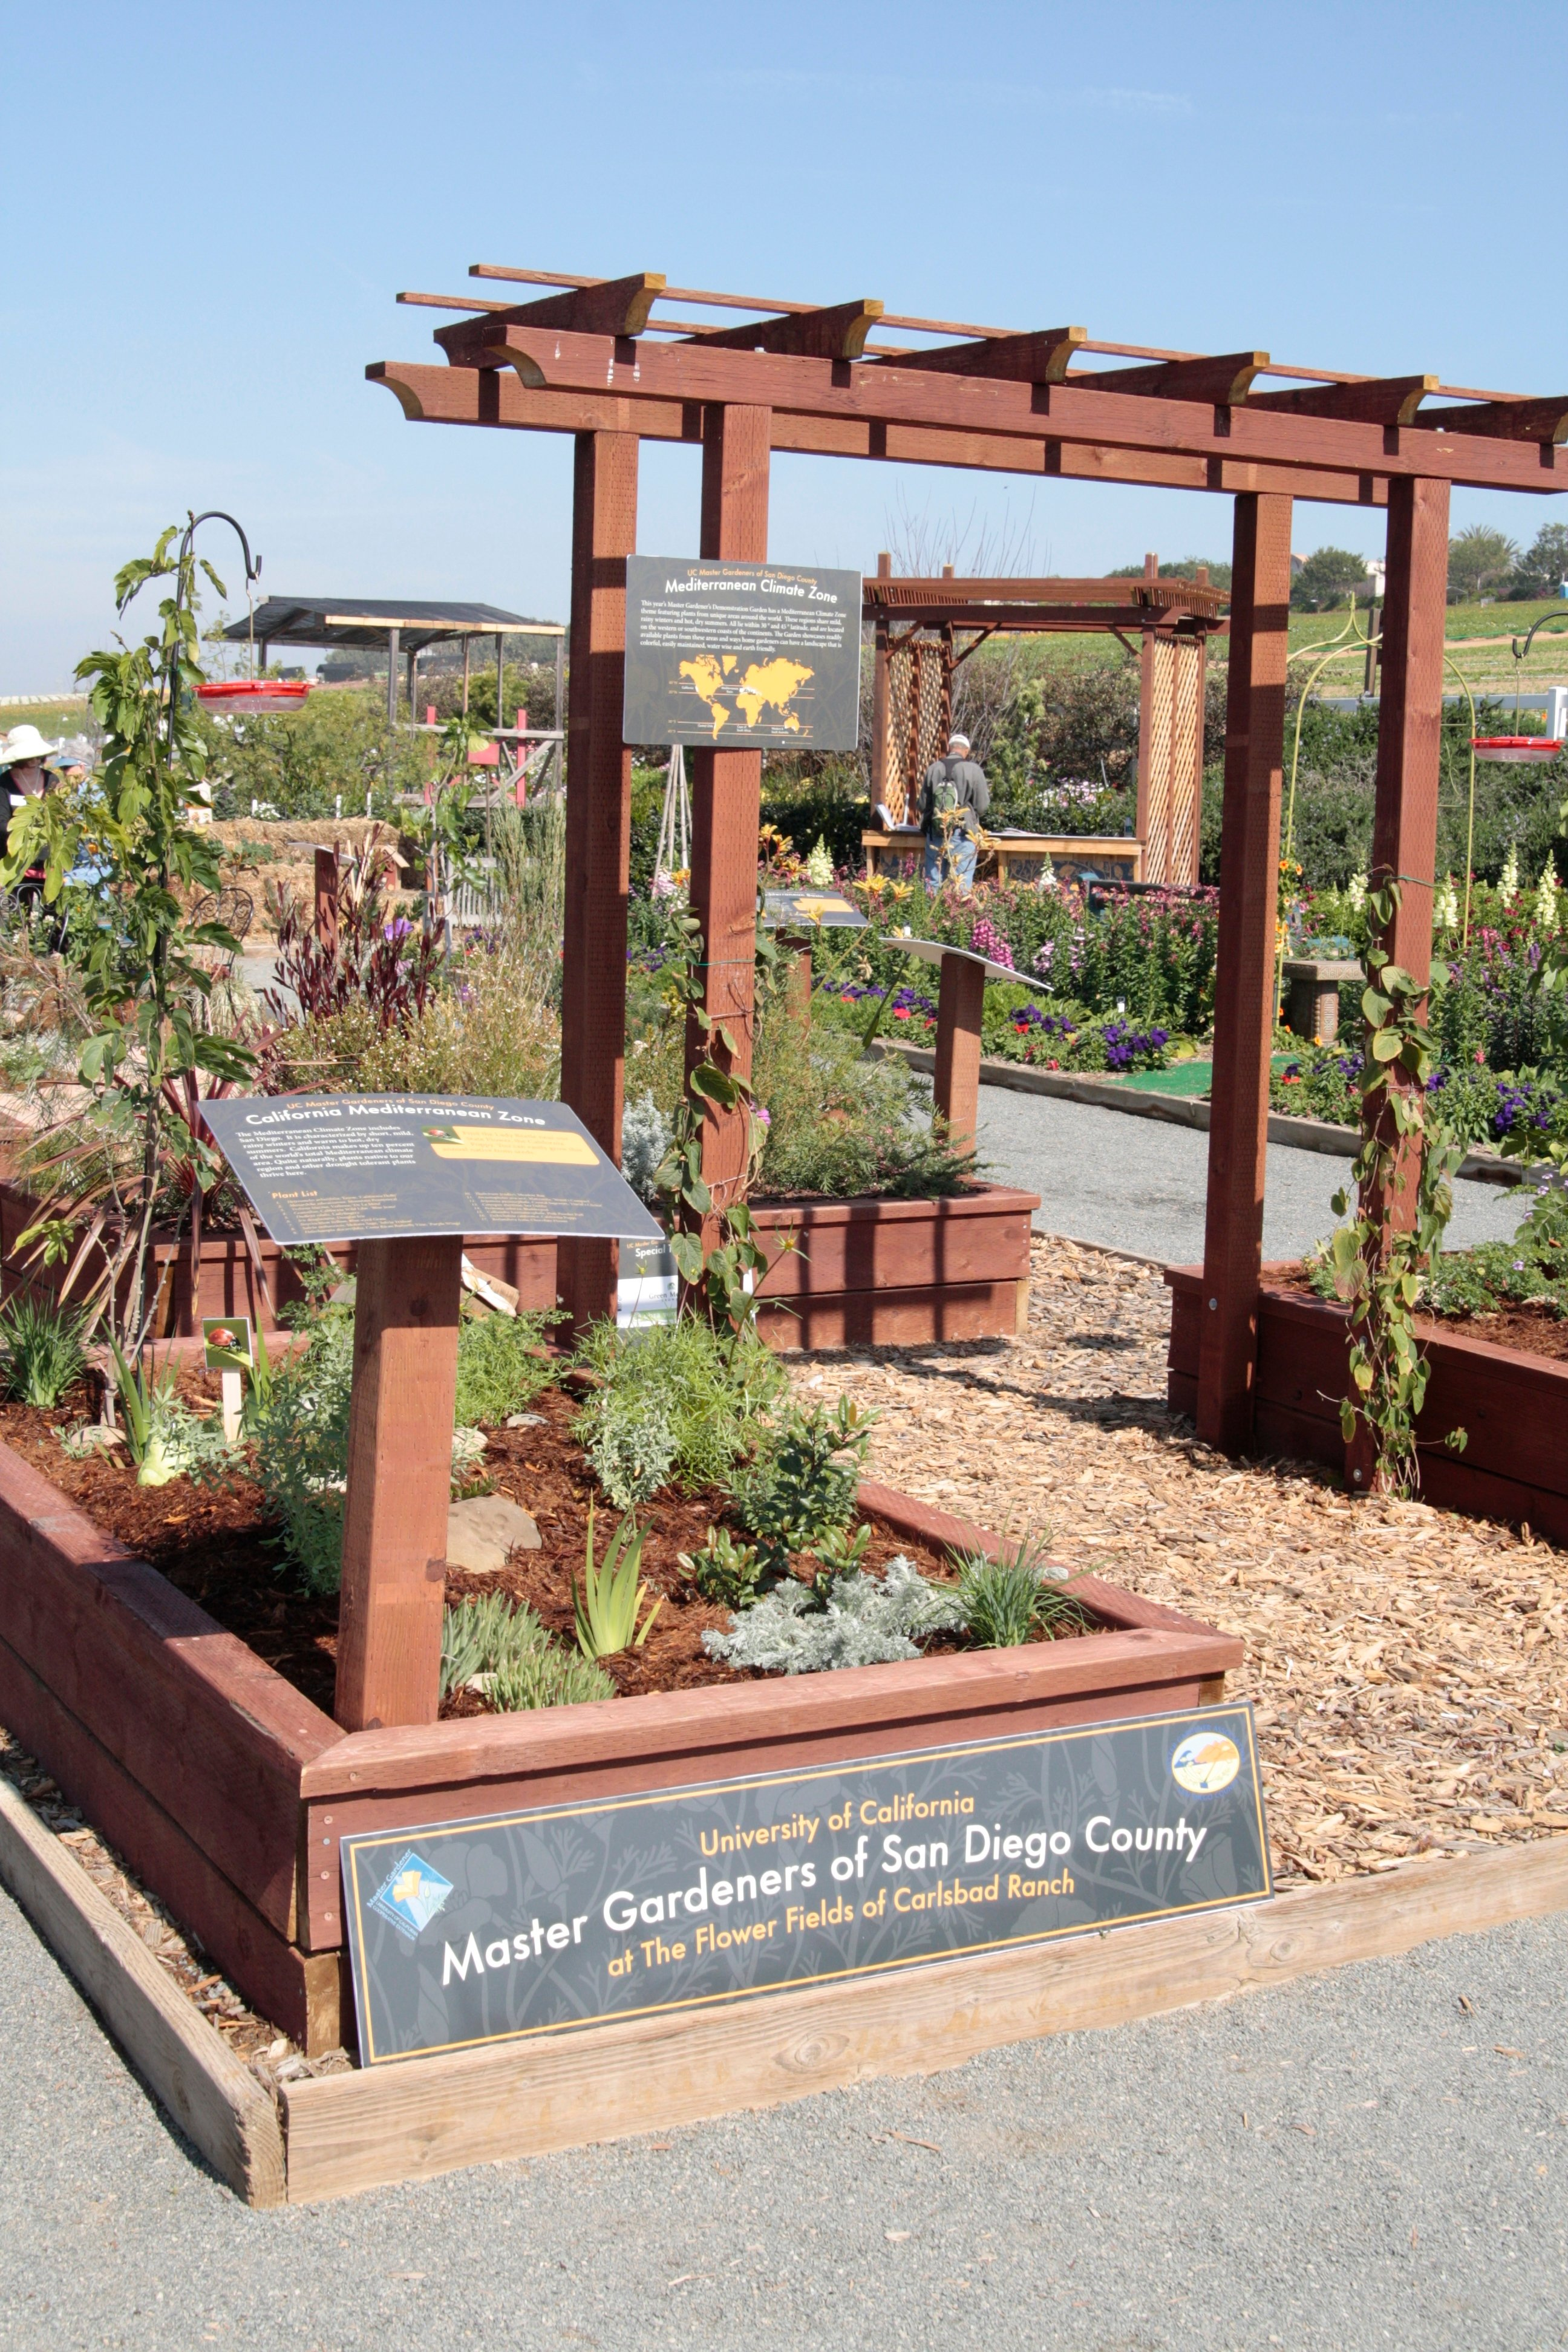 Raised garden beds put together by Master Gardeners of San Diego County.